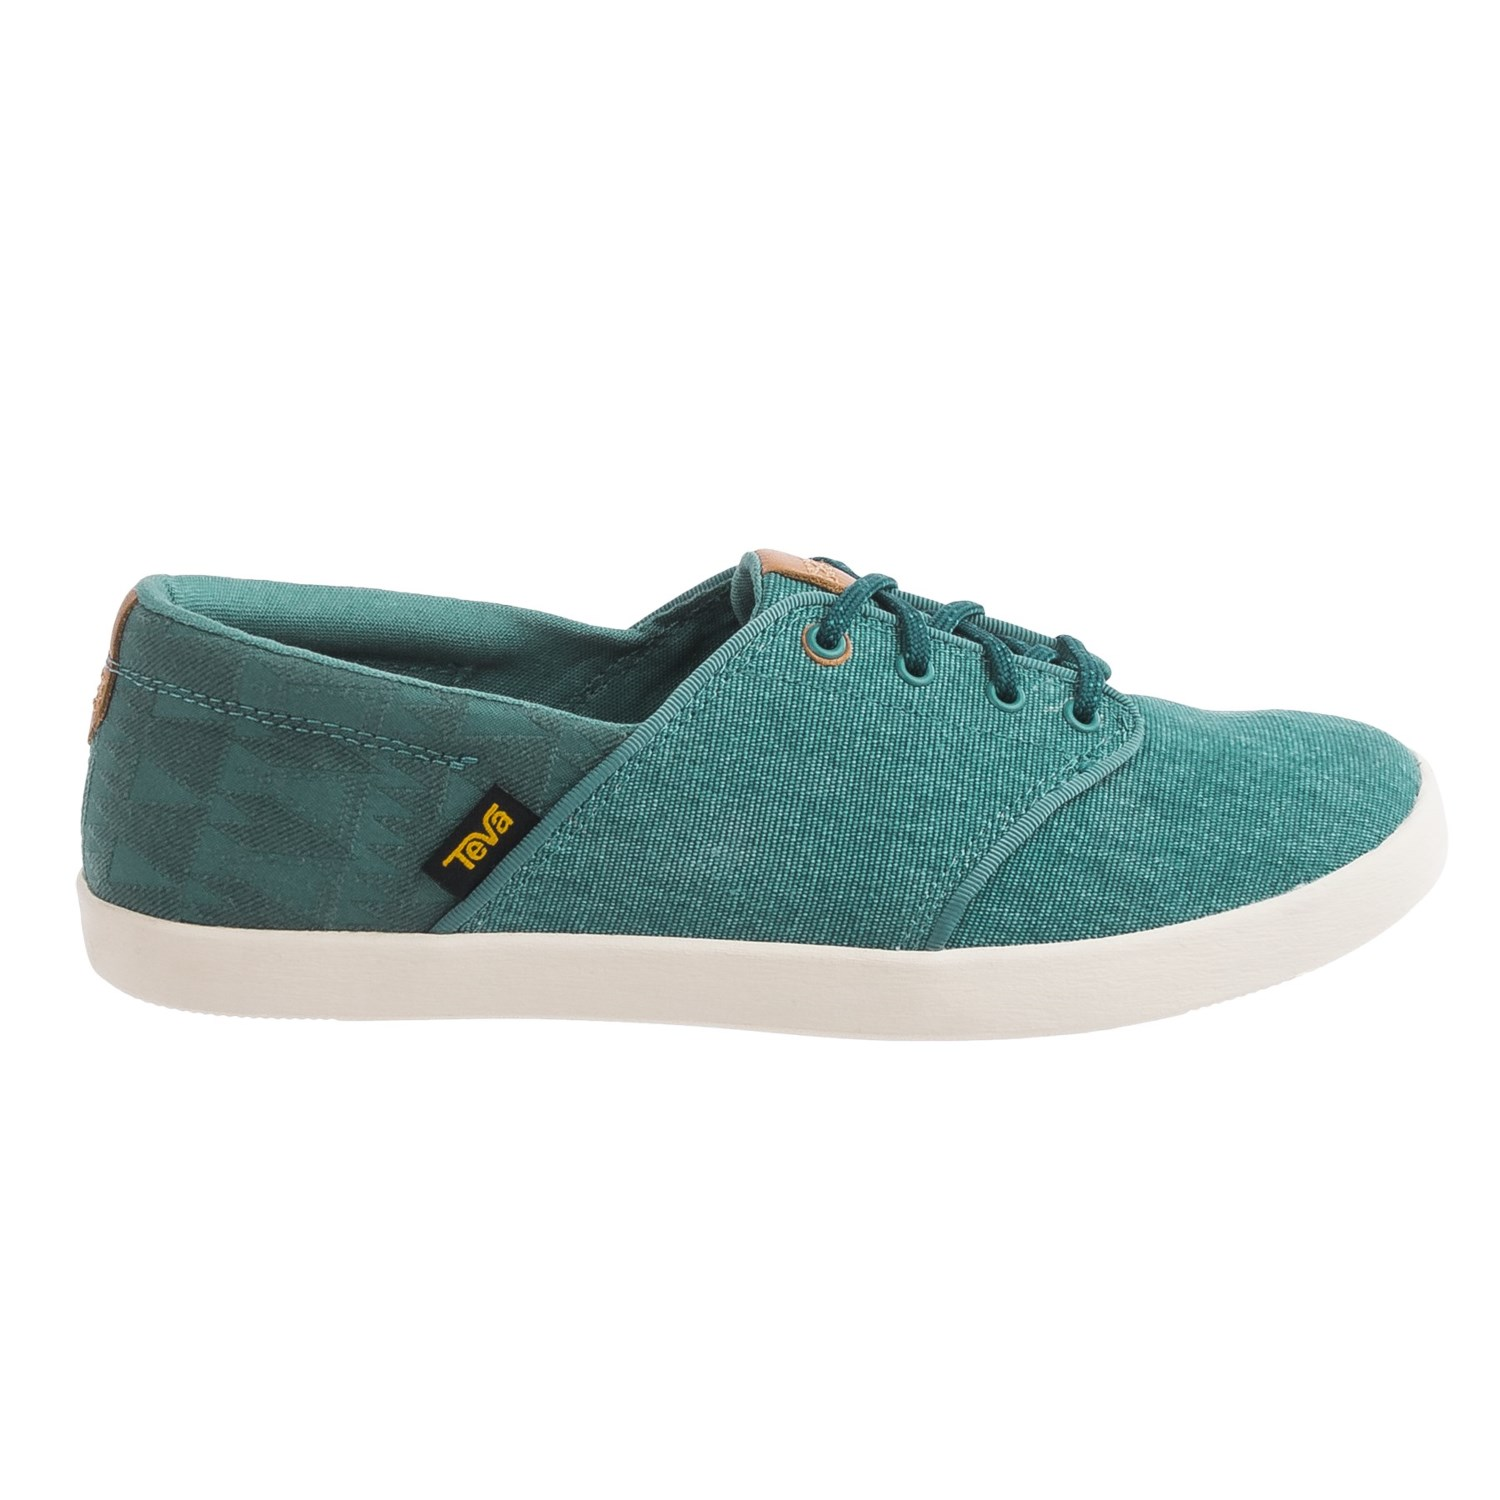 teva willow lace canvas sneakers for women   save 57